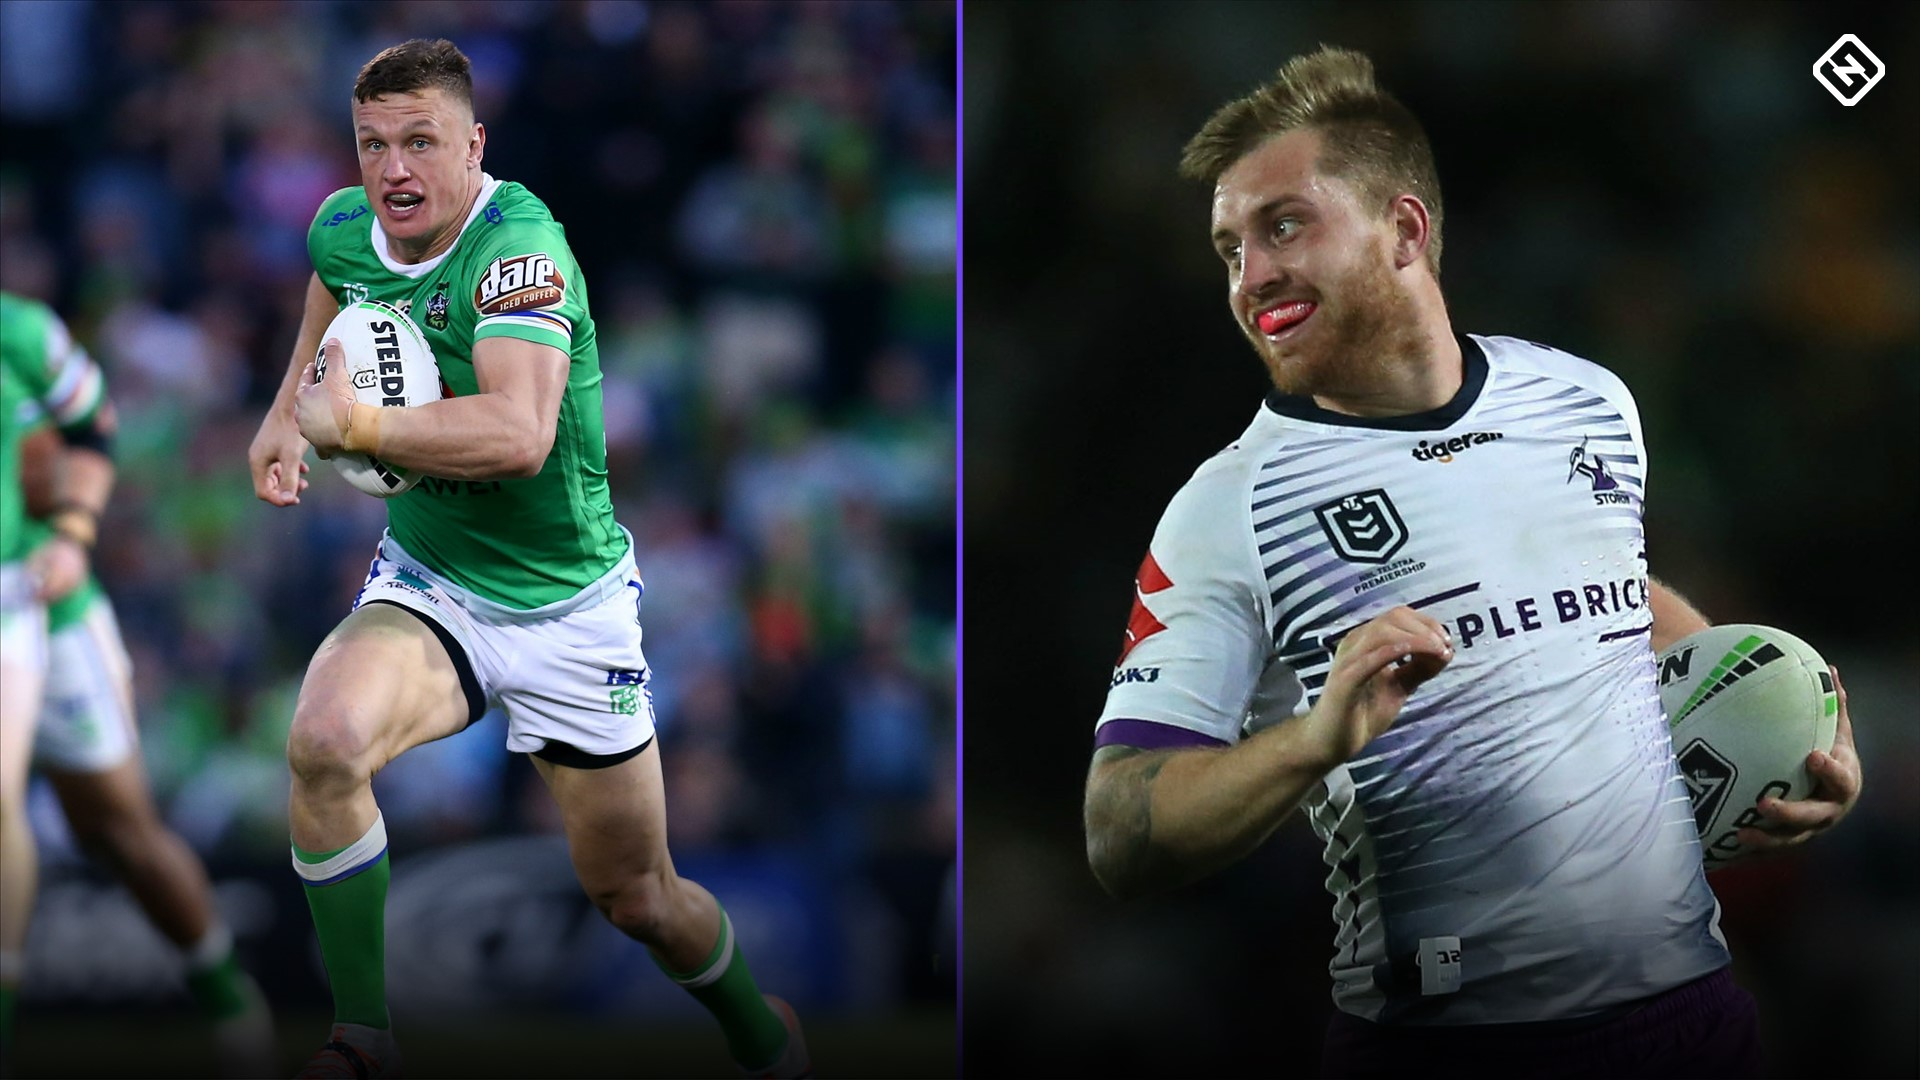 'He's one of the best': Cameron Munster ready for challenge against in-form Canberra Raiders star Jack Wighton